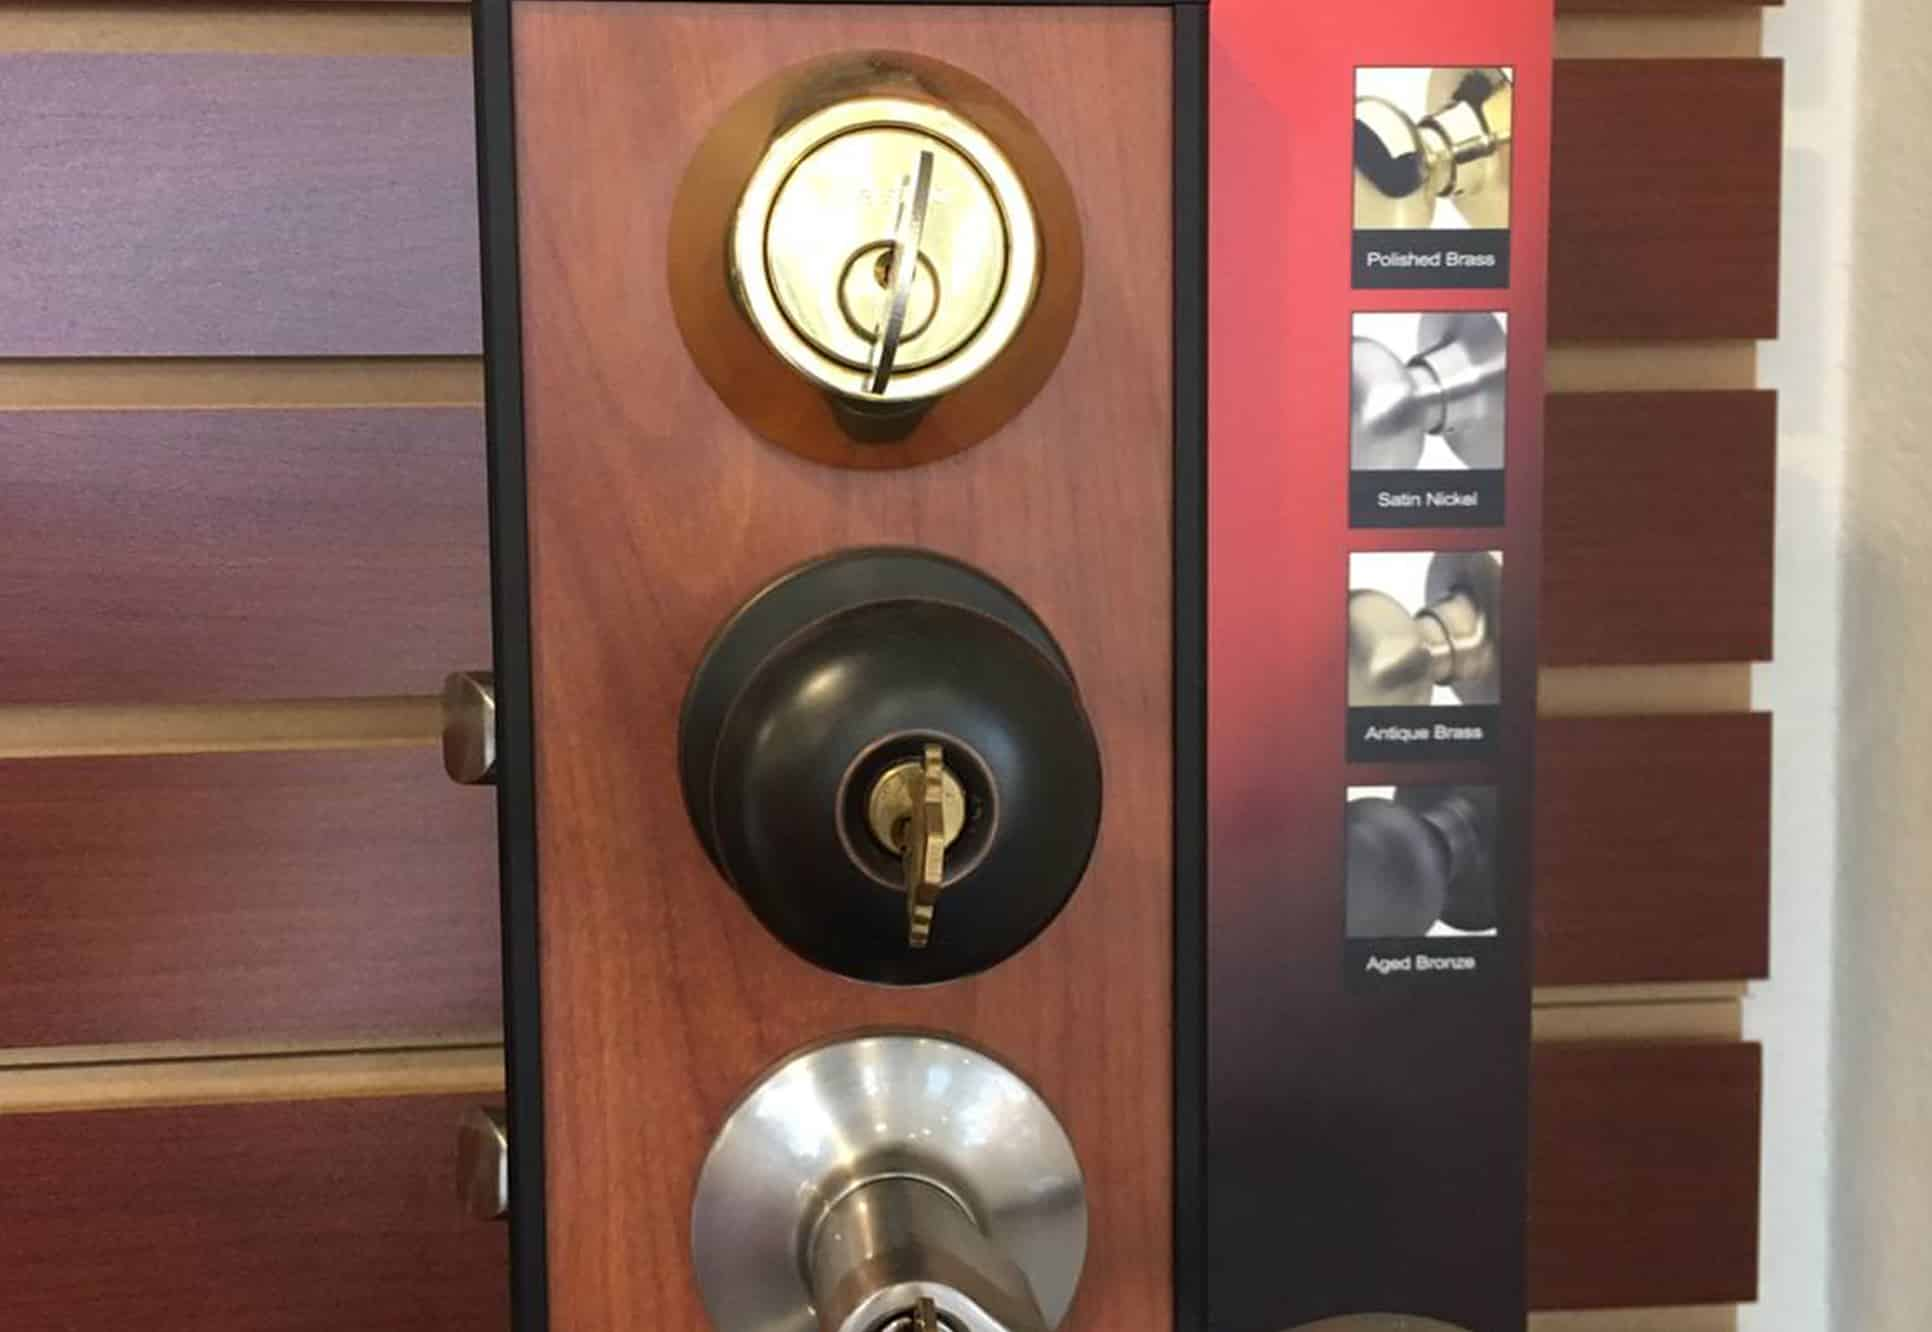 High Security & Jewelry Safes Las Vegas Nevada